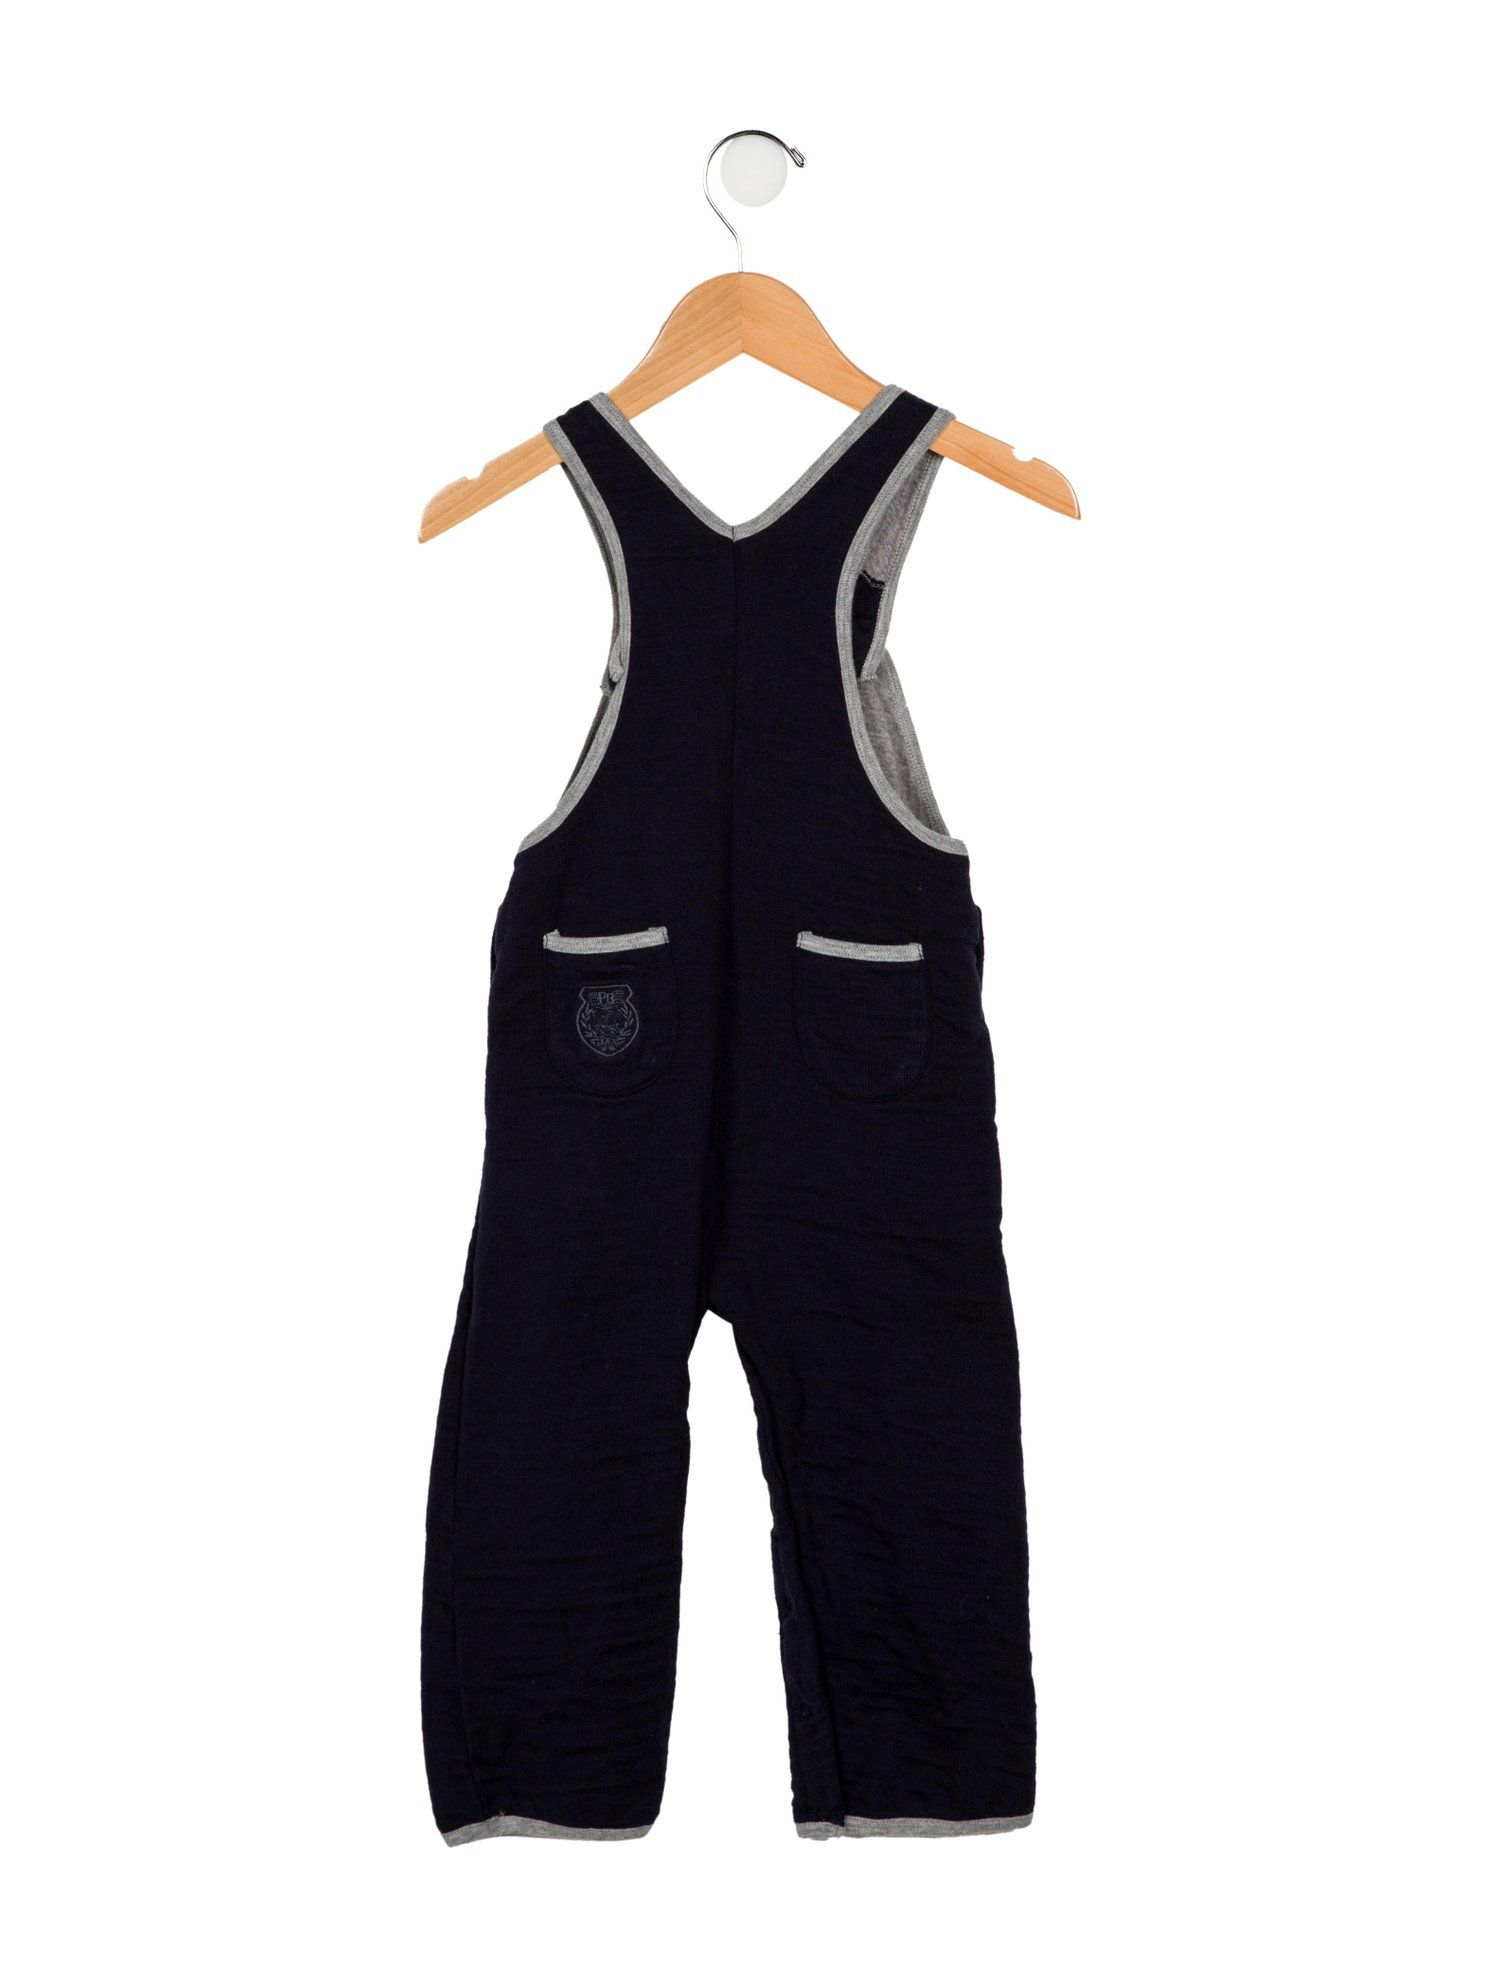 3a0011f805c Boys' Woven Overalls in 2019 | Styles Inspiration Chic | Overalls ...